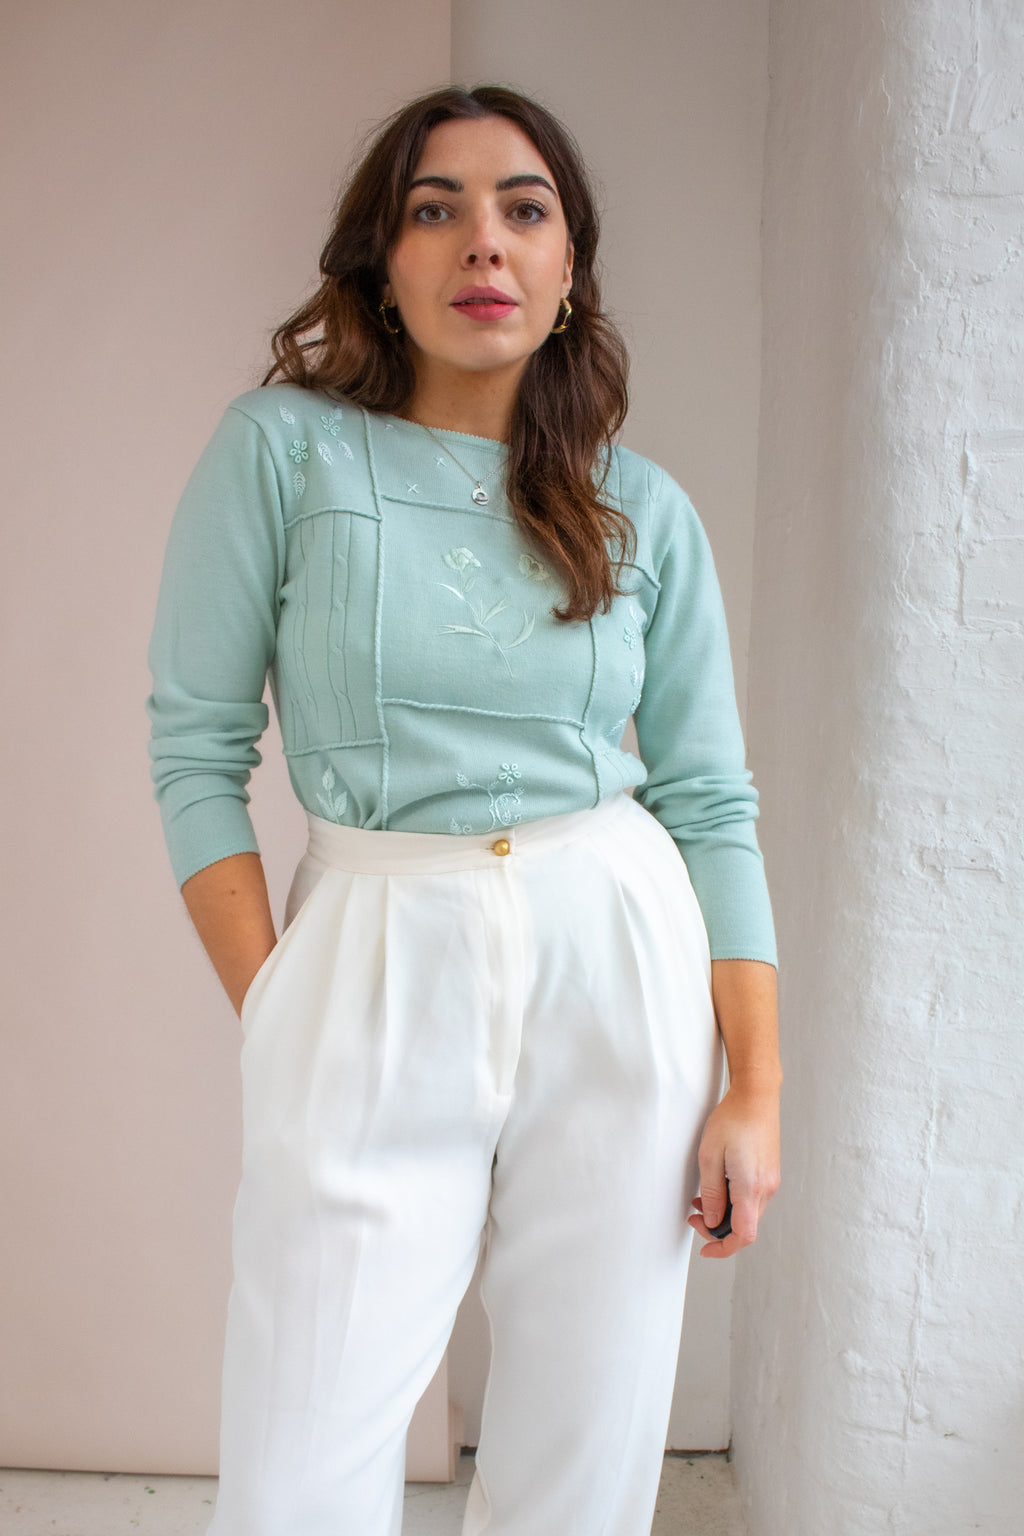 VintageEmbroidered Jumper in Mint - Dirty Disco